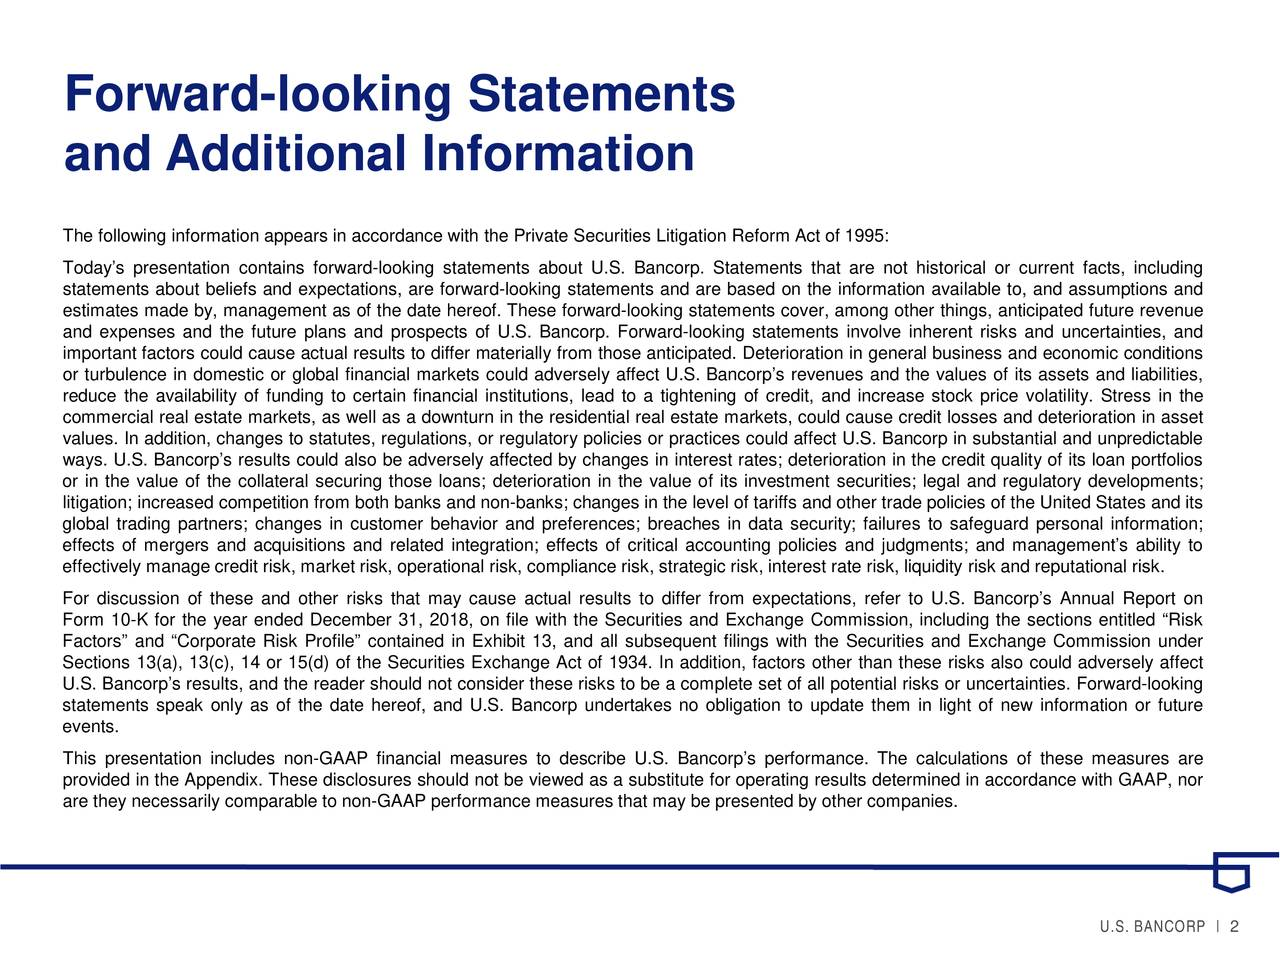 and Additional Information The following information appears in accordance with the Private Securities Litigation Reform Act of 1995: Today's presentation contains forward-looking statements about U.S. Bancorp. Statements that are not historical or current facts, including statements about beliefs and expectations, are forward-looking statements and are based on the information available to, and assumptions and estimates made by, management as of the date hereof. These forward-looking statements cover, among other things, anticipated future revenue and expenses and the future plans and prospects of U.S. Bancorp. Forward-looking statements involve inherent risks and uncertainties, and important factors could cause actual results to differ materially from those anticipated. Deterioration in general business and economic conditions or turbulence in domestic or global financial markets could adversely affect U.S. Bancorp's revenues and the values of its assets and liabilities, reduce the availability of funding to certain financial institutions, lead to a tightening of credit, and increase stock price volatility. Stress in the commercial real estate markets, as well as a downturn in the residential real estate markets, could cause credit losses and deterioration in asset values. In addition, changes to statutes, regulations, or regulatory policies or practices could affect U.S. Bancorp in substantial and unpredictable ways. U.S. Bancorp's results could also be adversely affected by changes in interest rates; deterioration in the credit quality of its loan portfolios or in the value of the collateral securing those loans; deterioration in the value of its investment securities; legal and regulatory developments; litigation; increased competition from both banks and non-banks; changes in the level of tariffs and other trade policies of the United States and its global trading partners; changes in customer behavior and preferences; breaches in data security; failures to sa